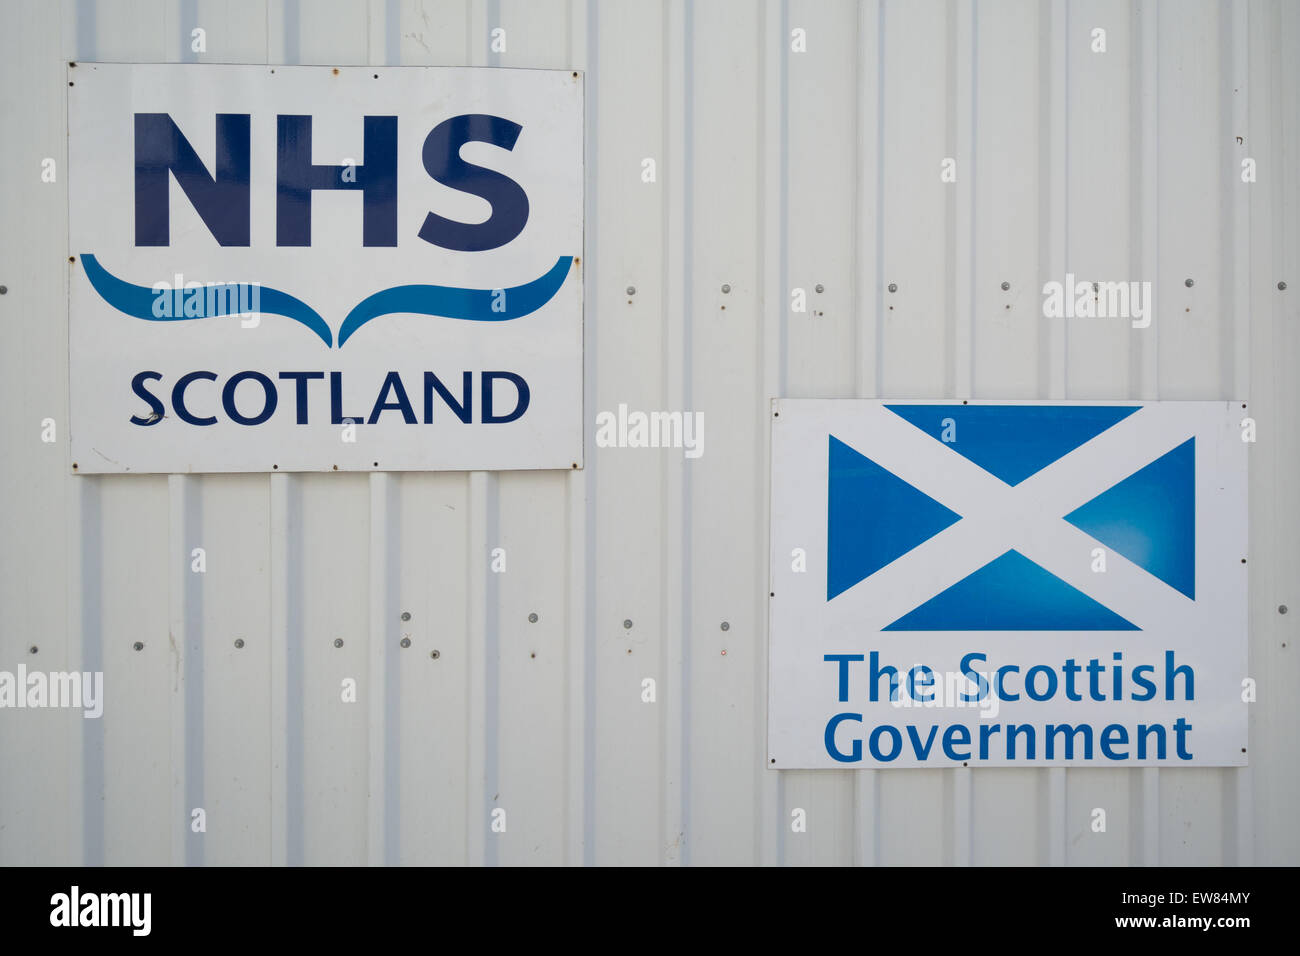 NHS Scotland and The Scottish Government signs erected during the construction of the new South Glasgow University - Stock Image